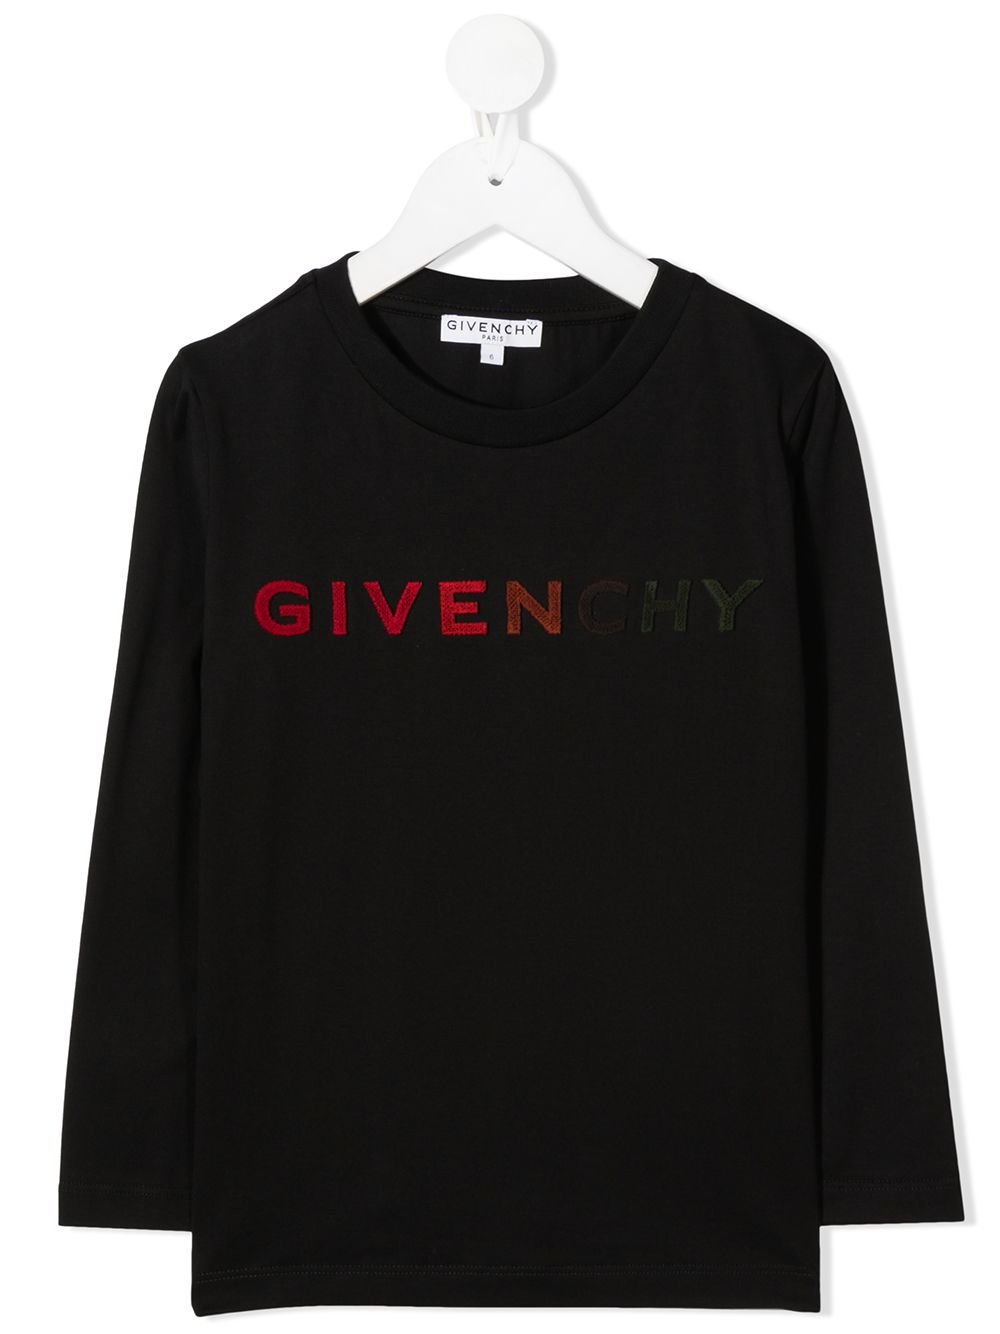 GIVENCHY KIDS Multicolour Logo Longsleeve T-Shirt Black - Maison De Fashion